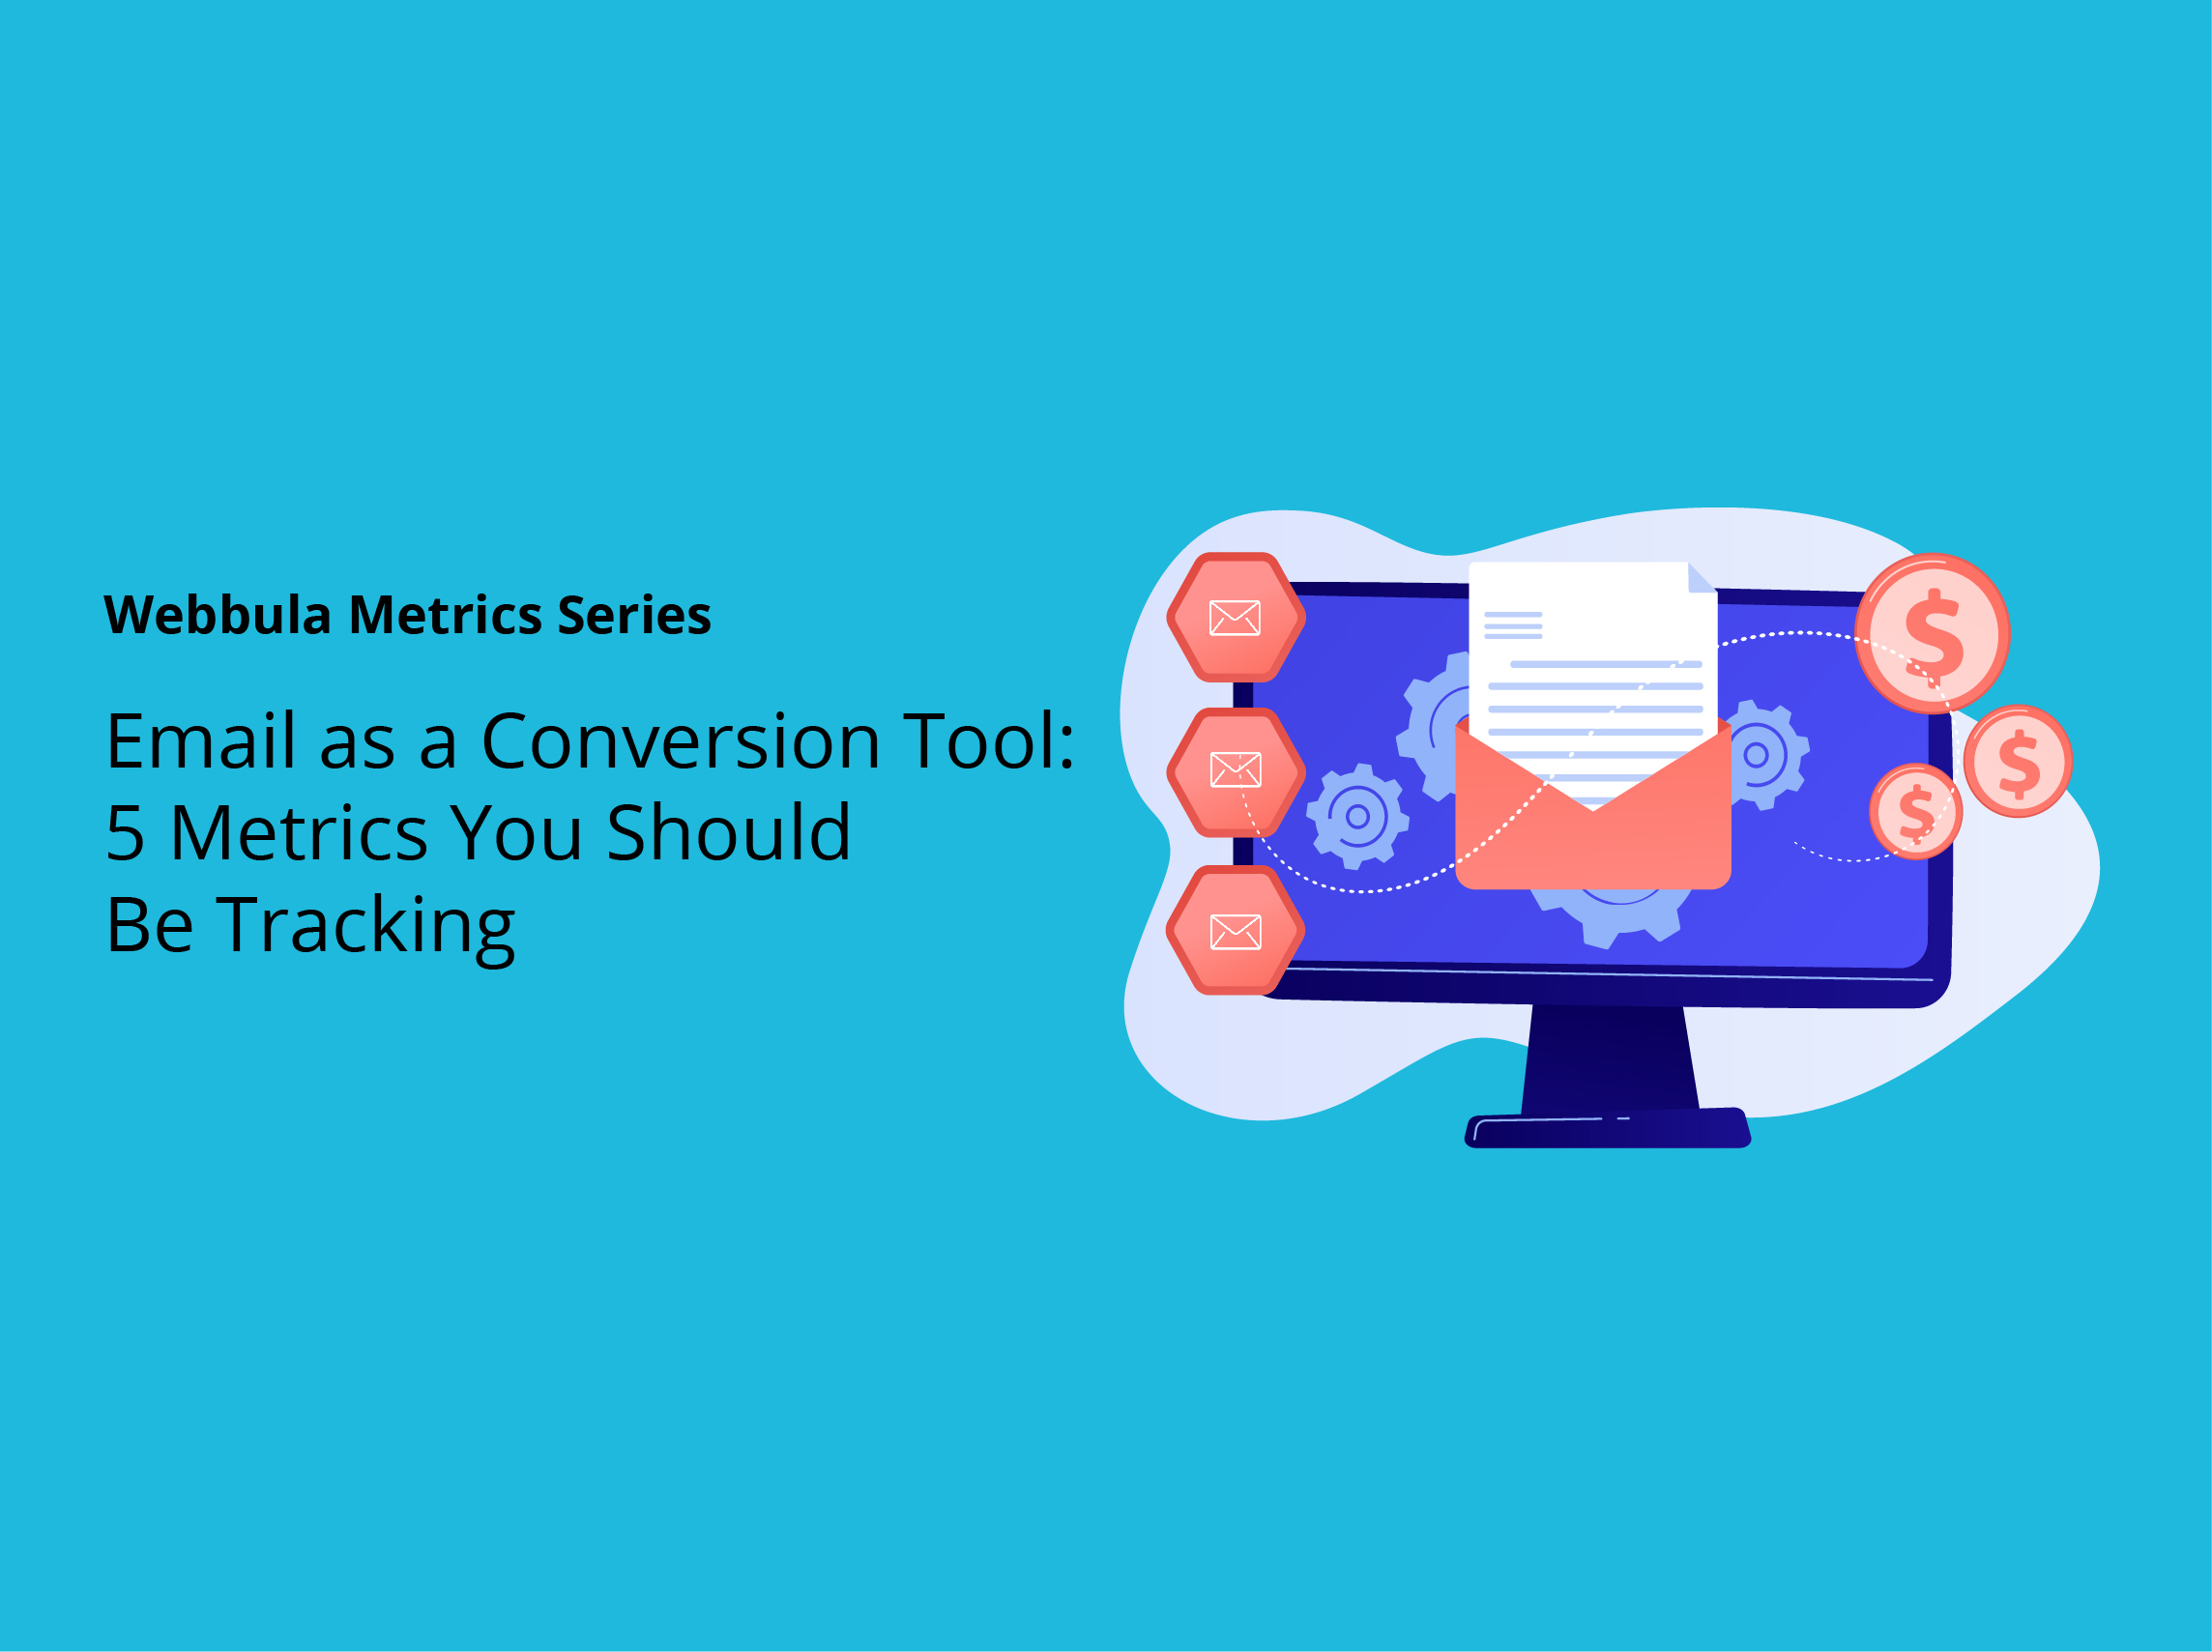 Email as a Conversion Tool: 5 Metrics You Should Be Tracking